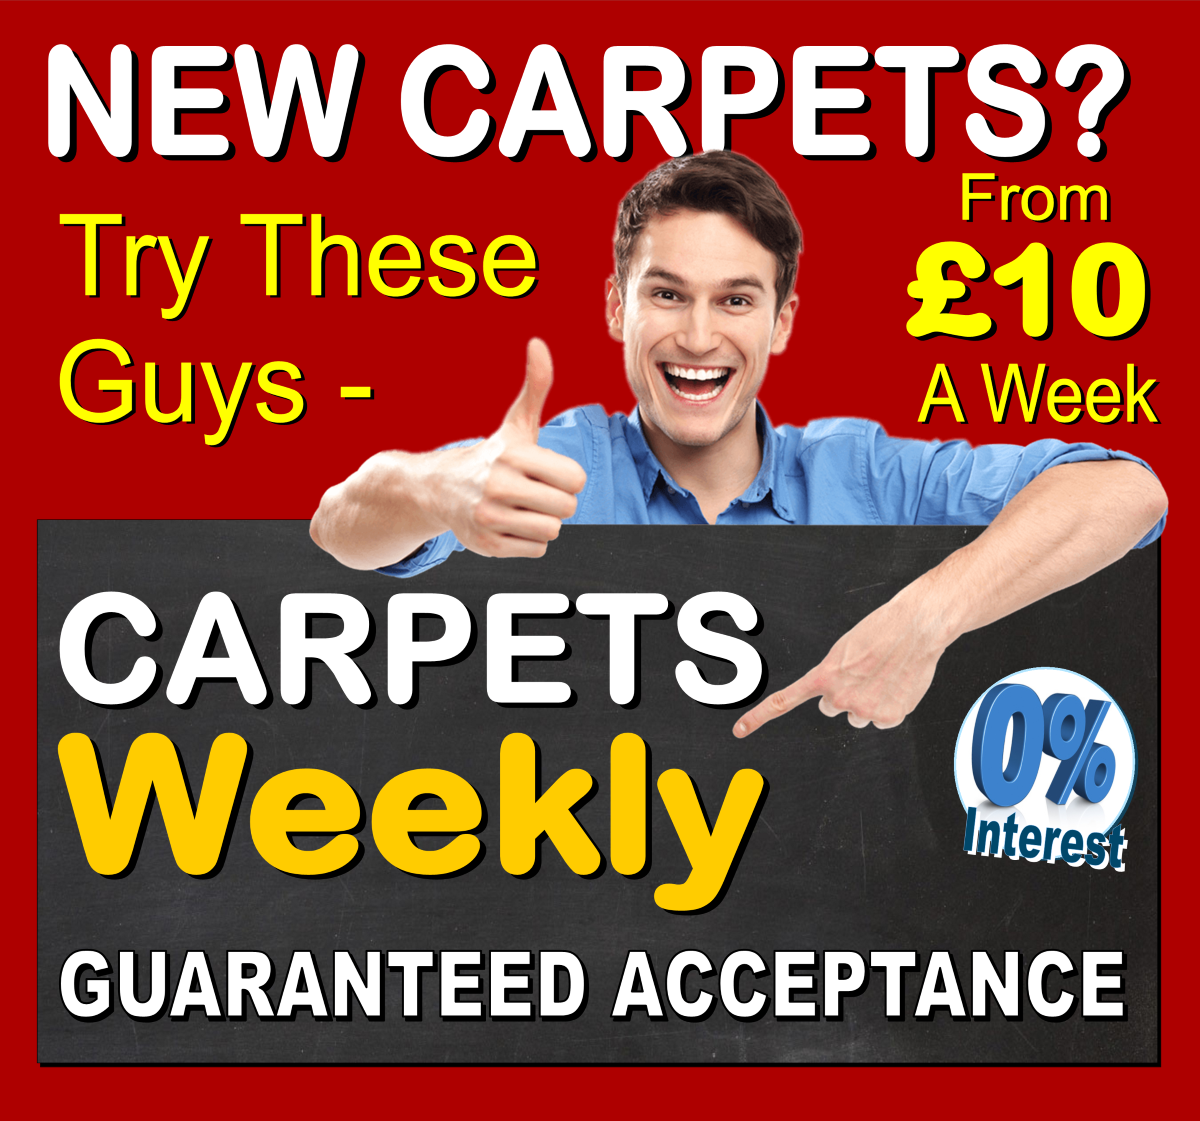 New Carpets? Try theses Guys at Carpets Weekly